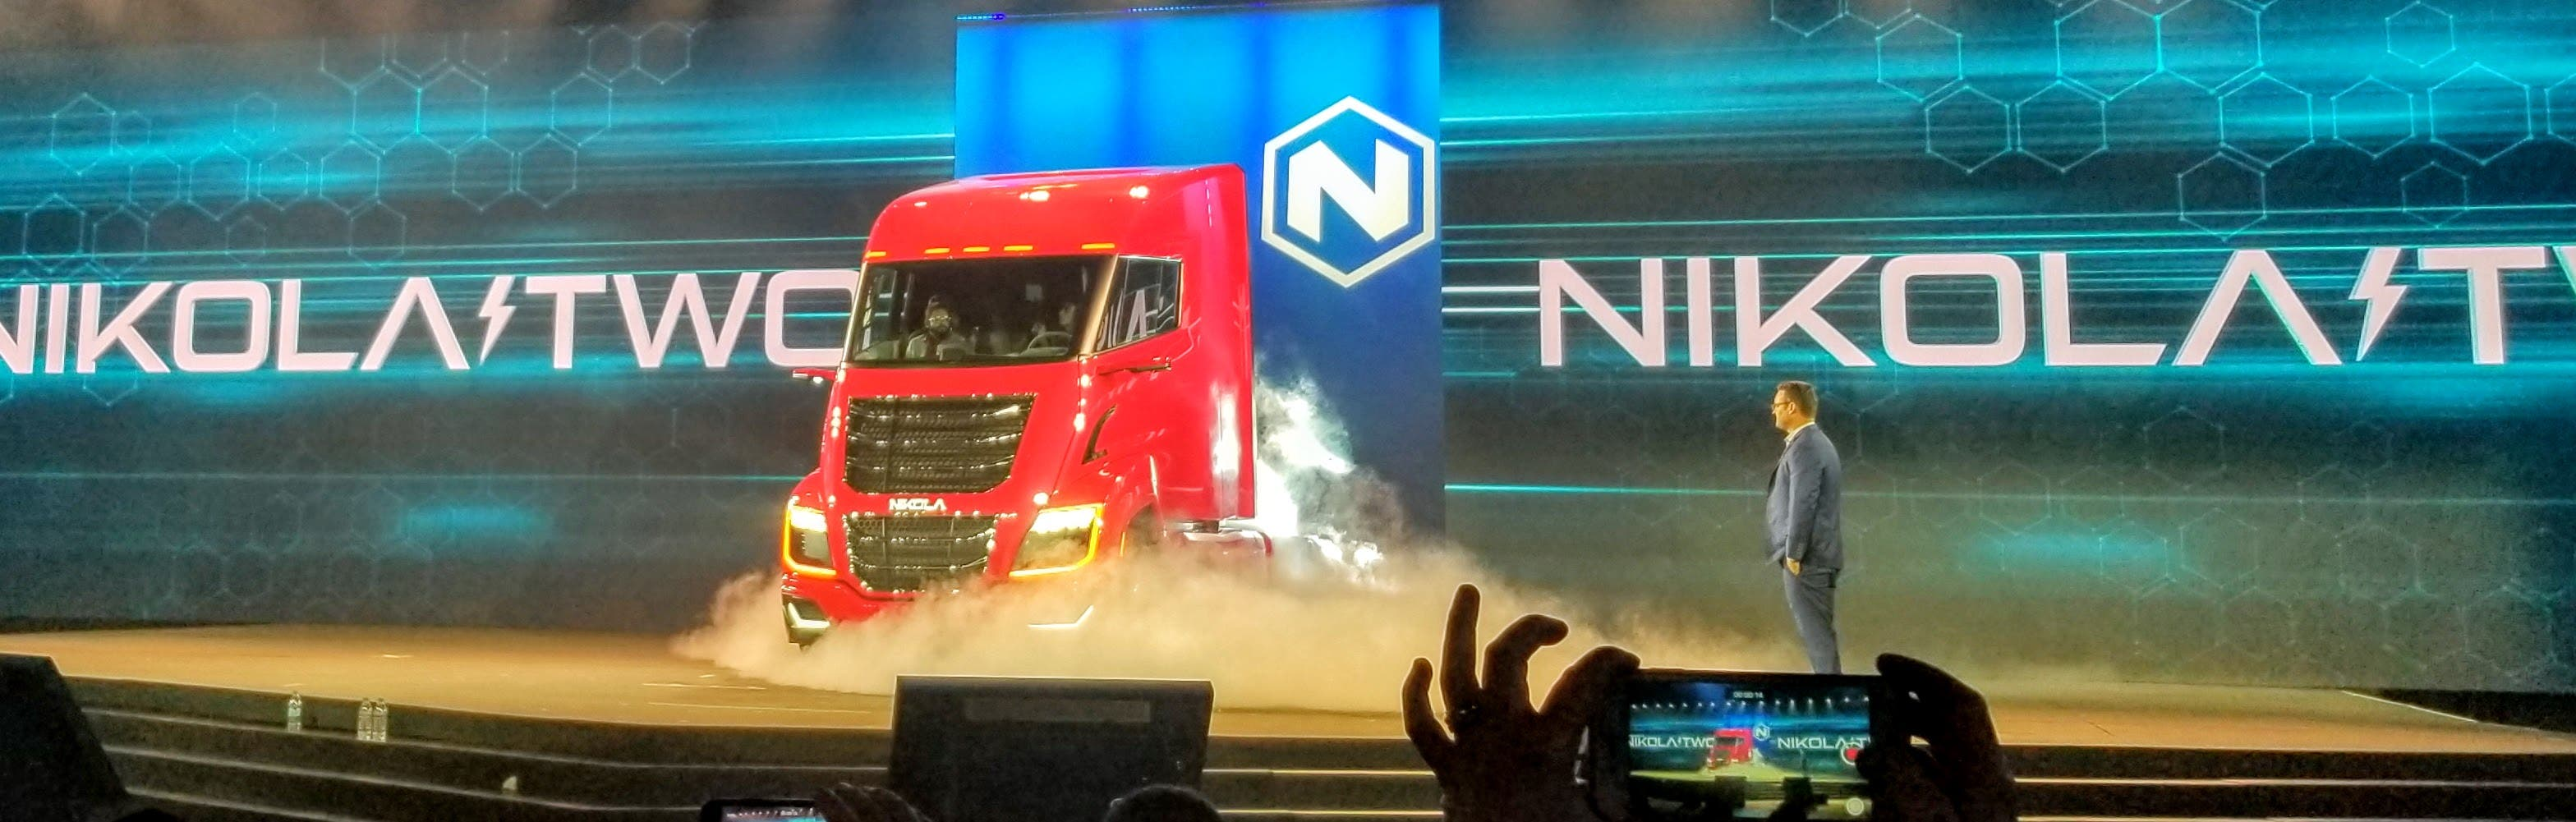 Nikola Motors Shoots For The Moon With 5 New Electric Vehicles — #CleanTechnica Field Trip